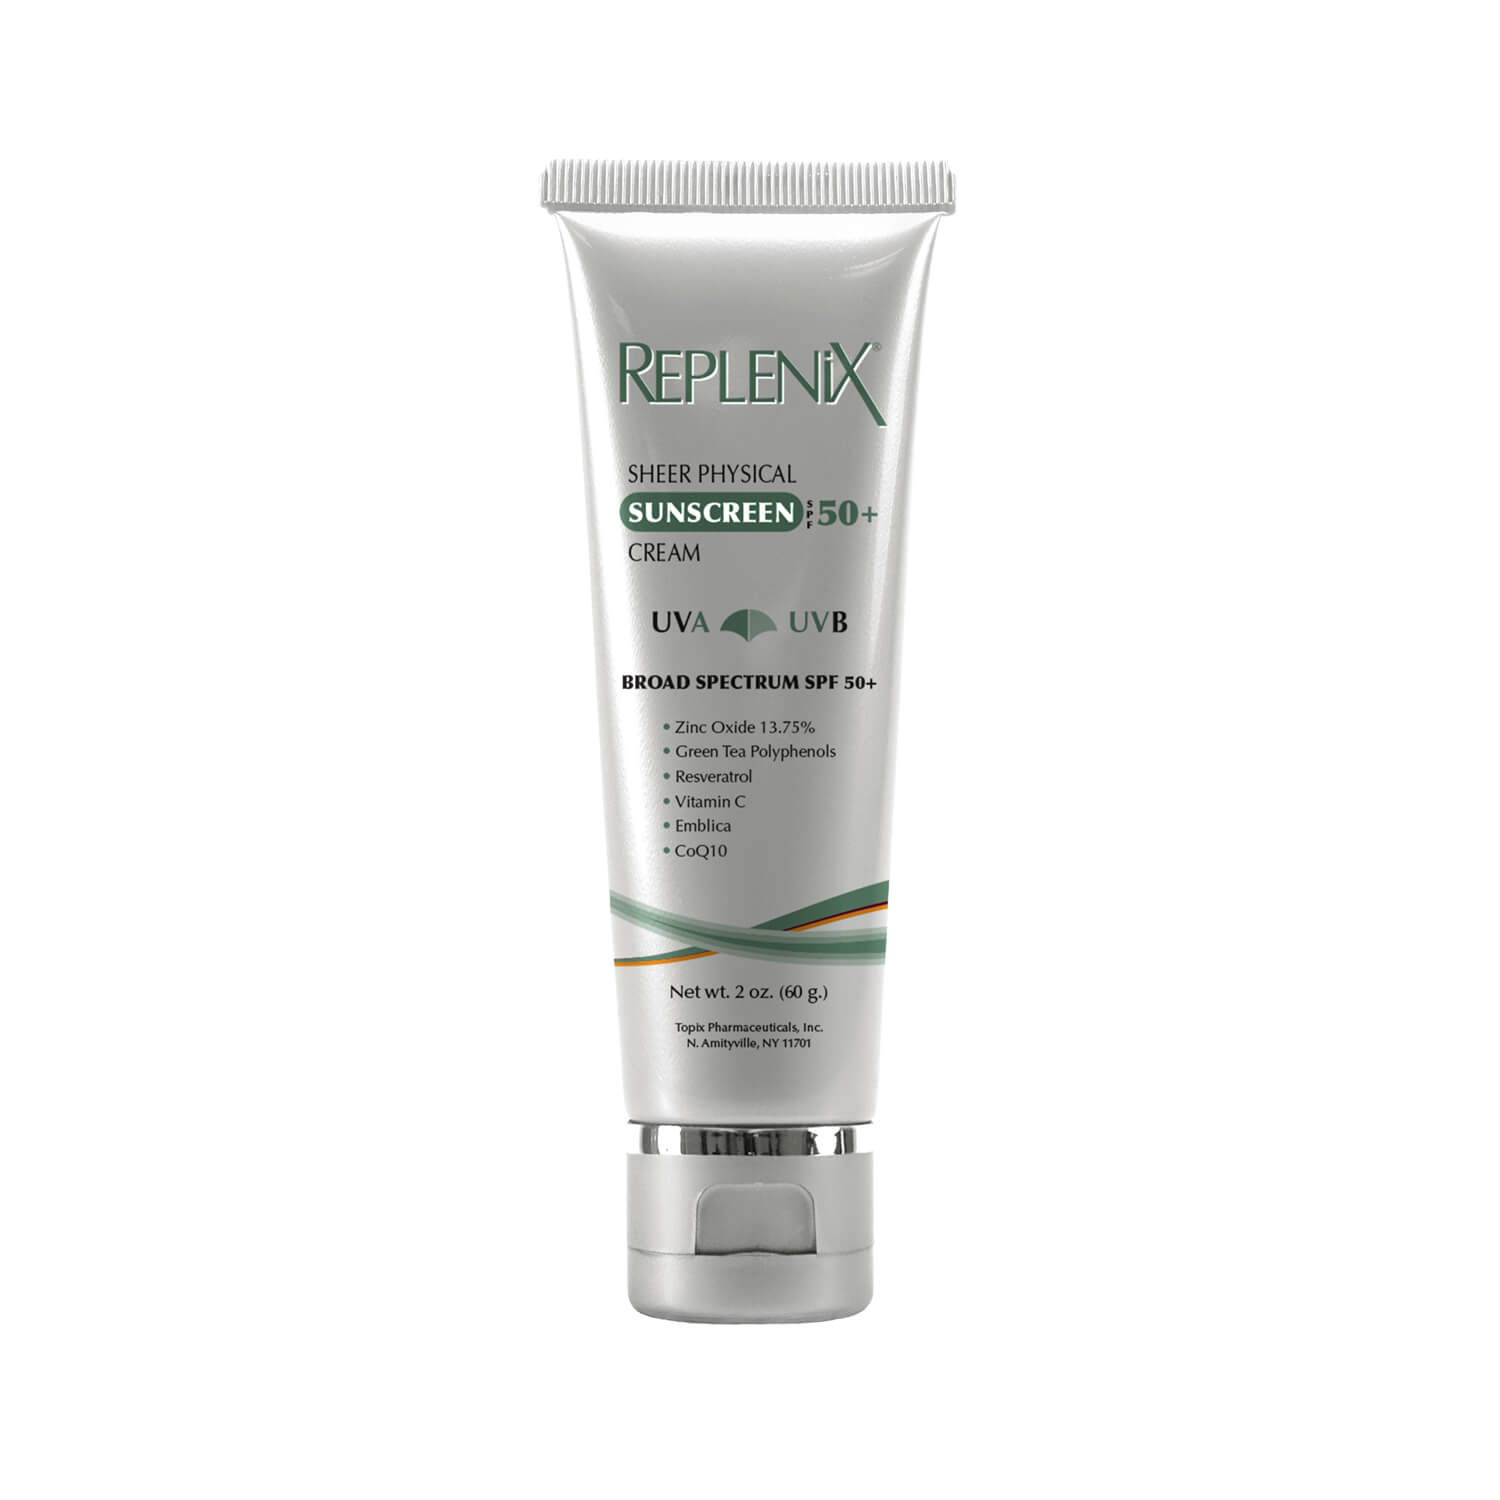 a00a346df13 Replenix Sheer Physical Sunscreen Cream SPF 50 | SkinStore